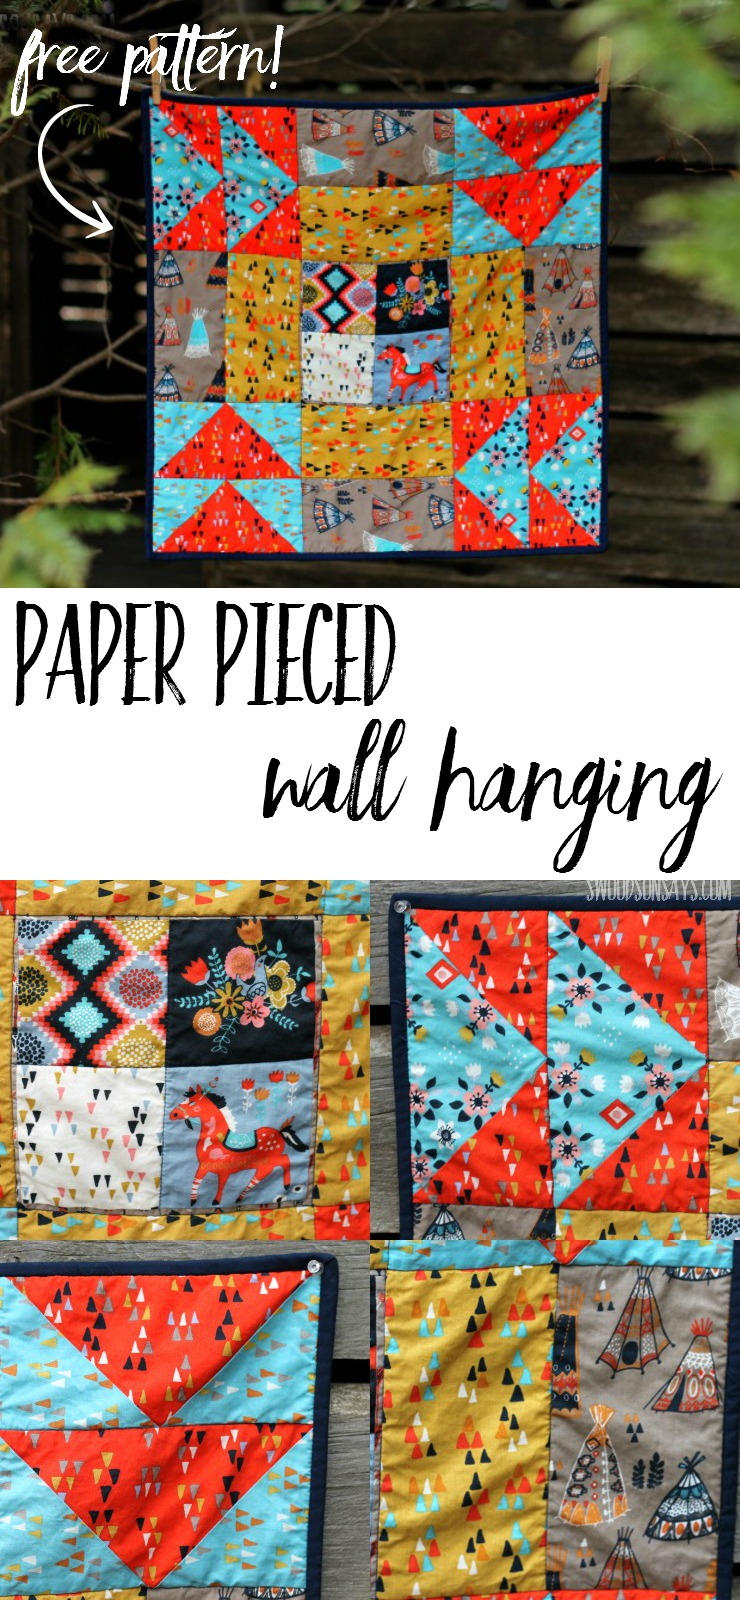 A paper pieced wall hanging - made from one big quilt block! The free pattern is from Sew What Sherlock and it is a great intro to paper piecing